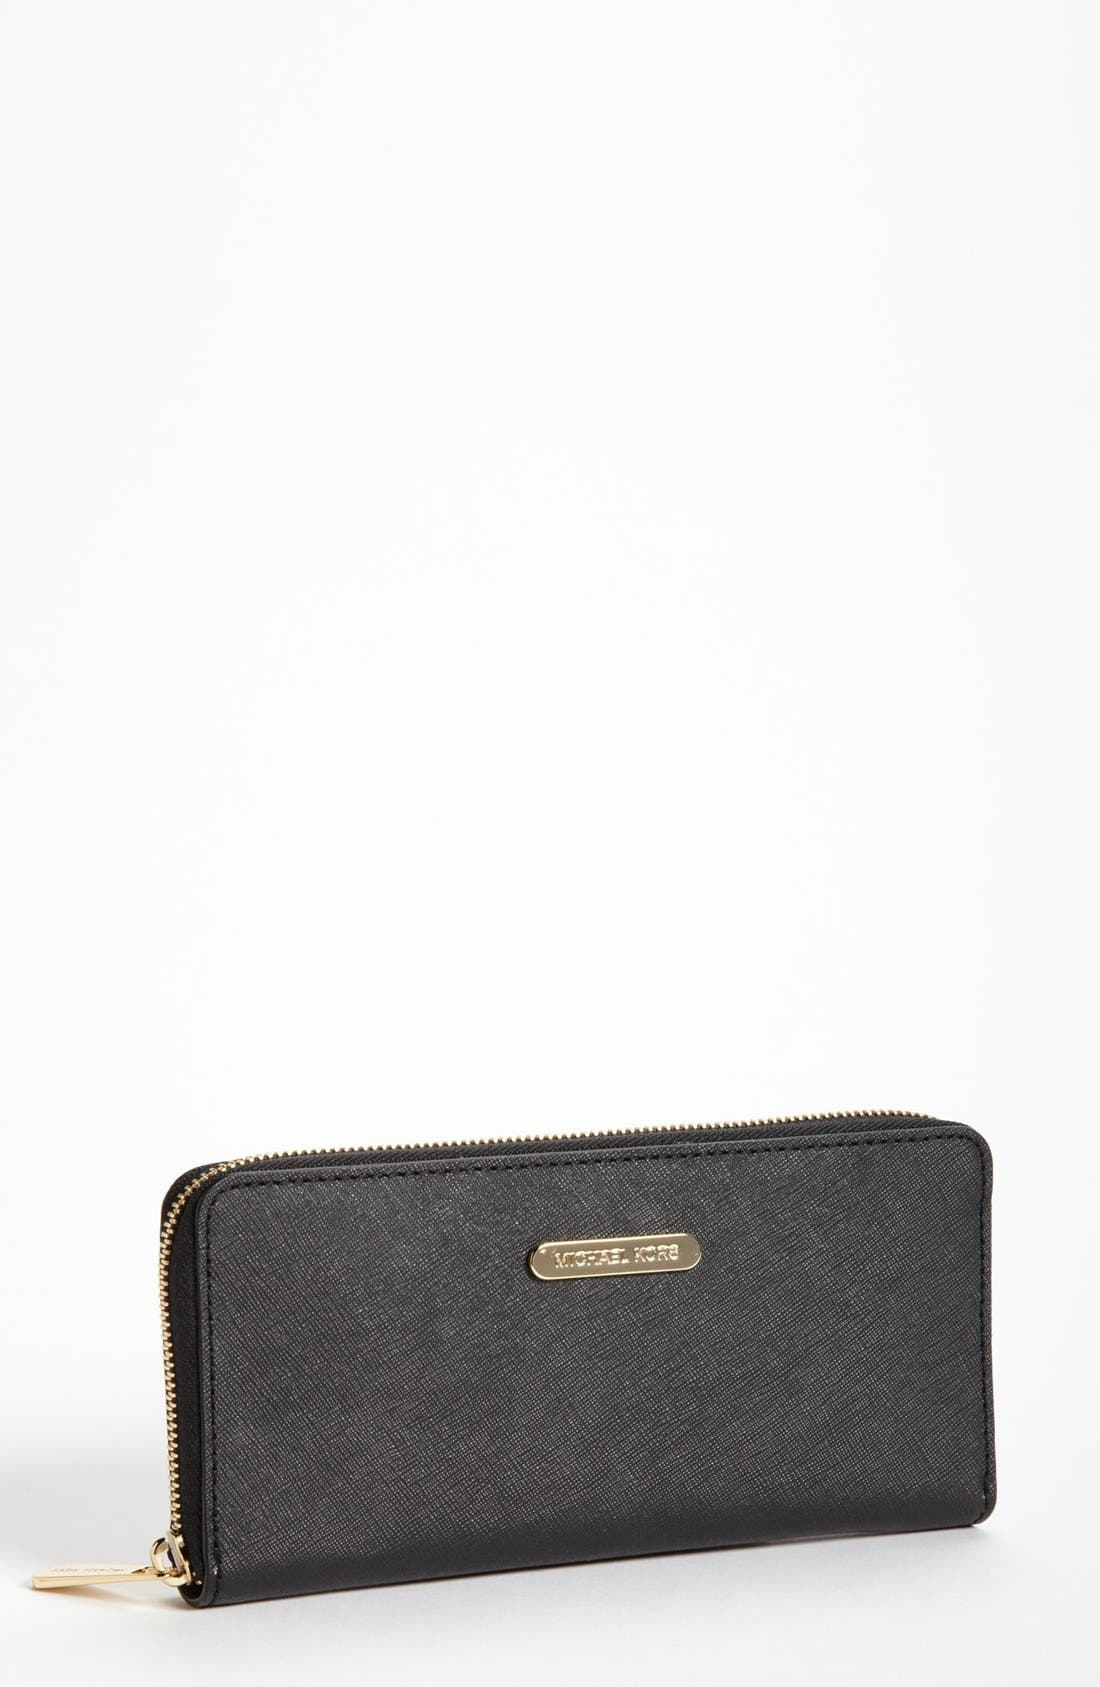 Alternate Image 1 Selected - MICHAEL Michael Kors Saffiano Leather Zip Around Wallet